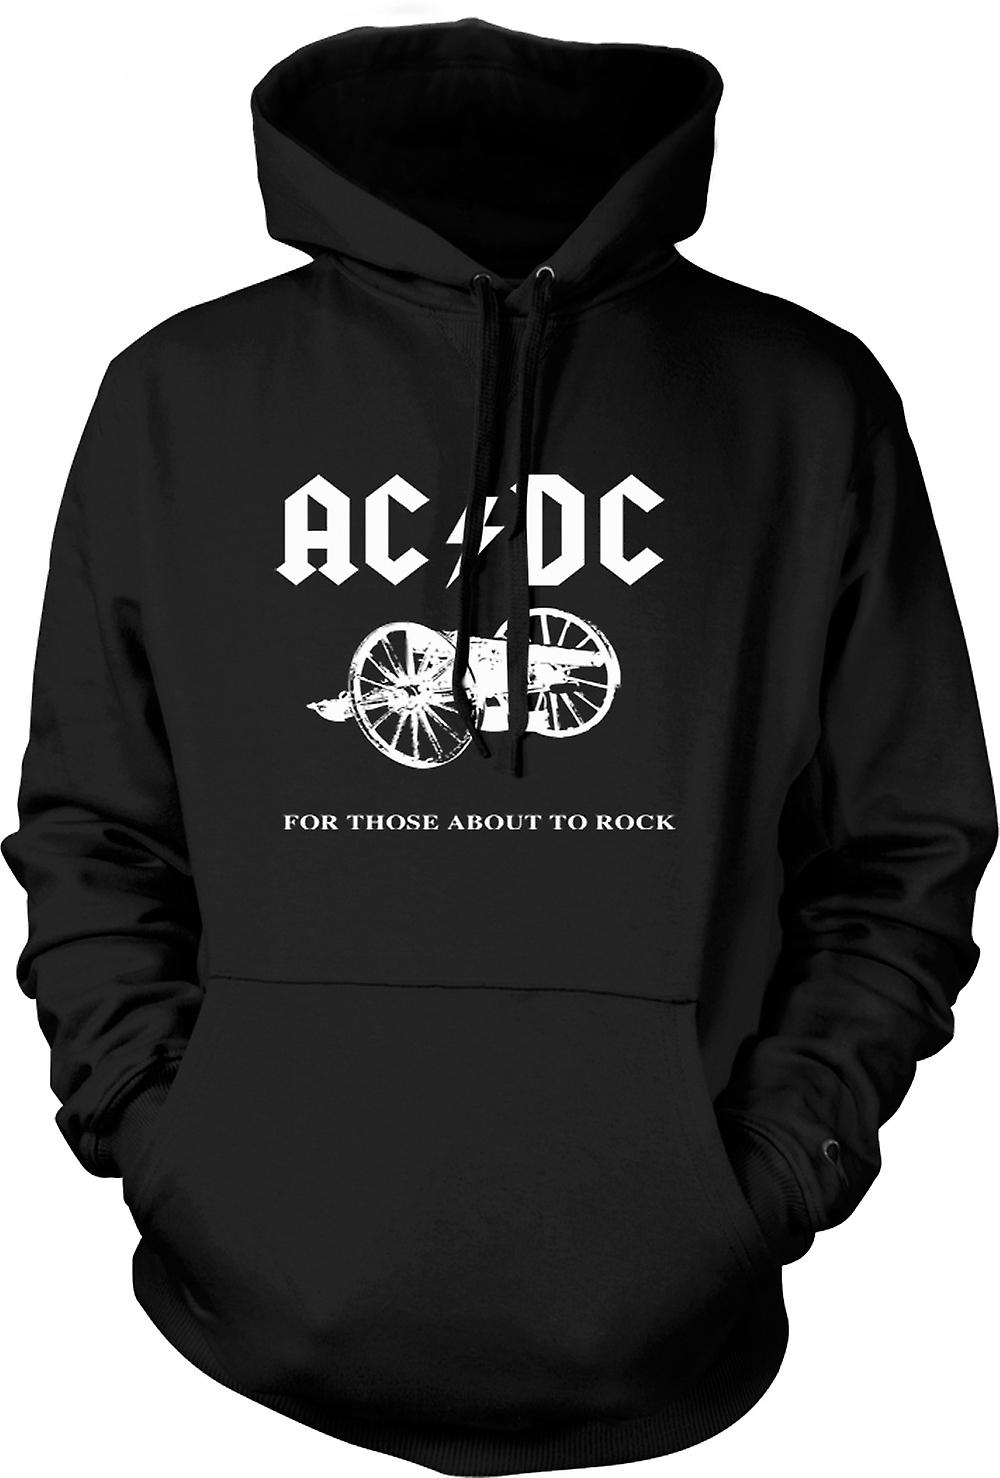 Mens Hoodie - AC/DC For Those About To Rock